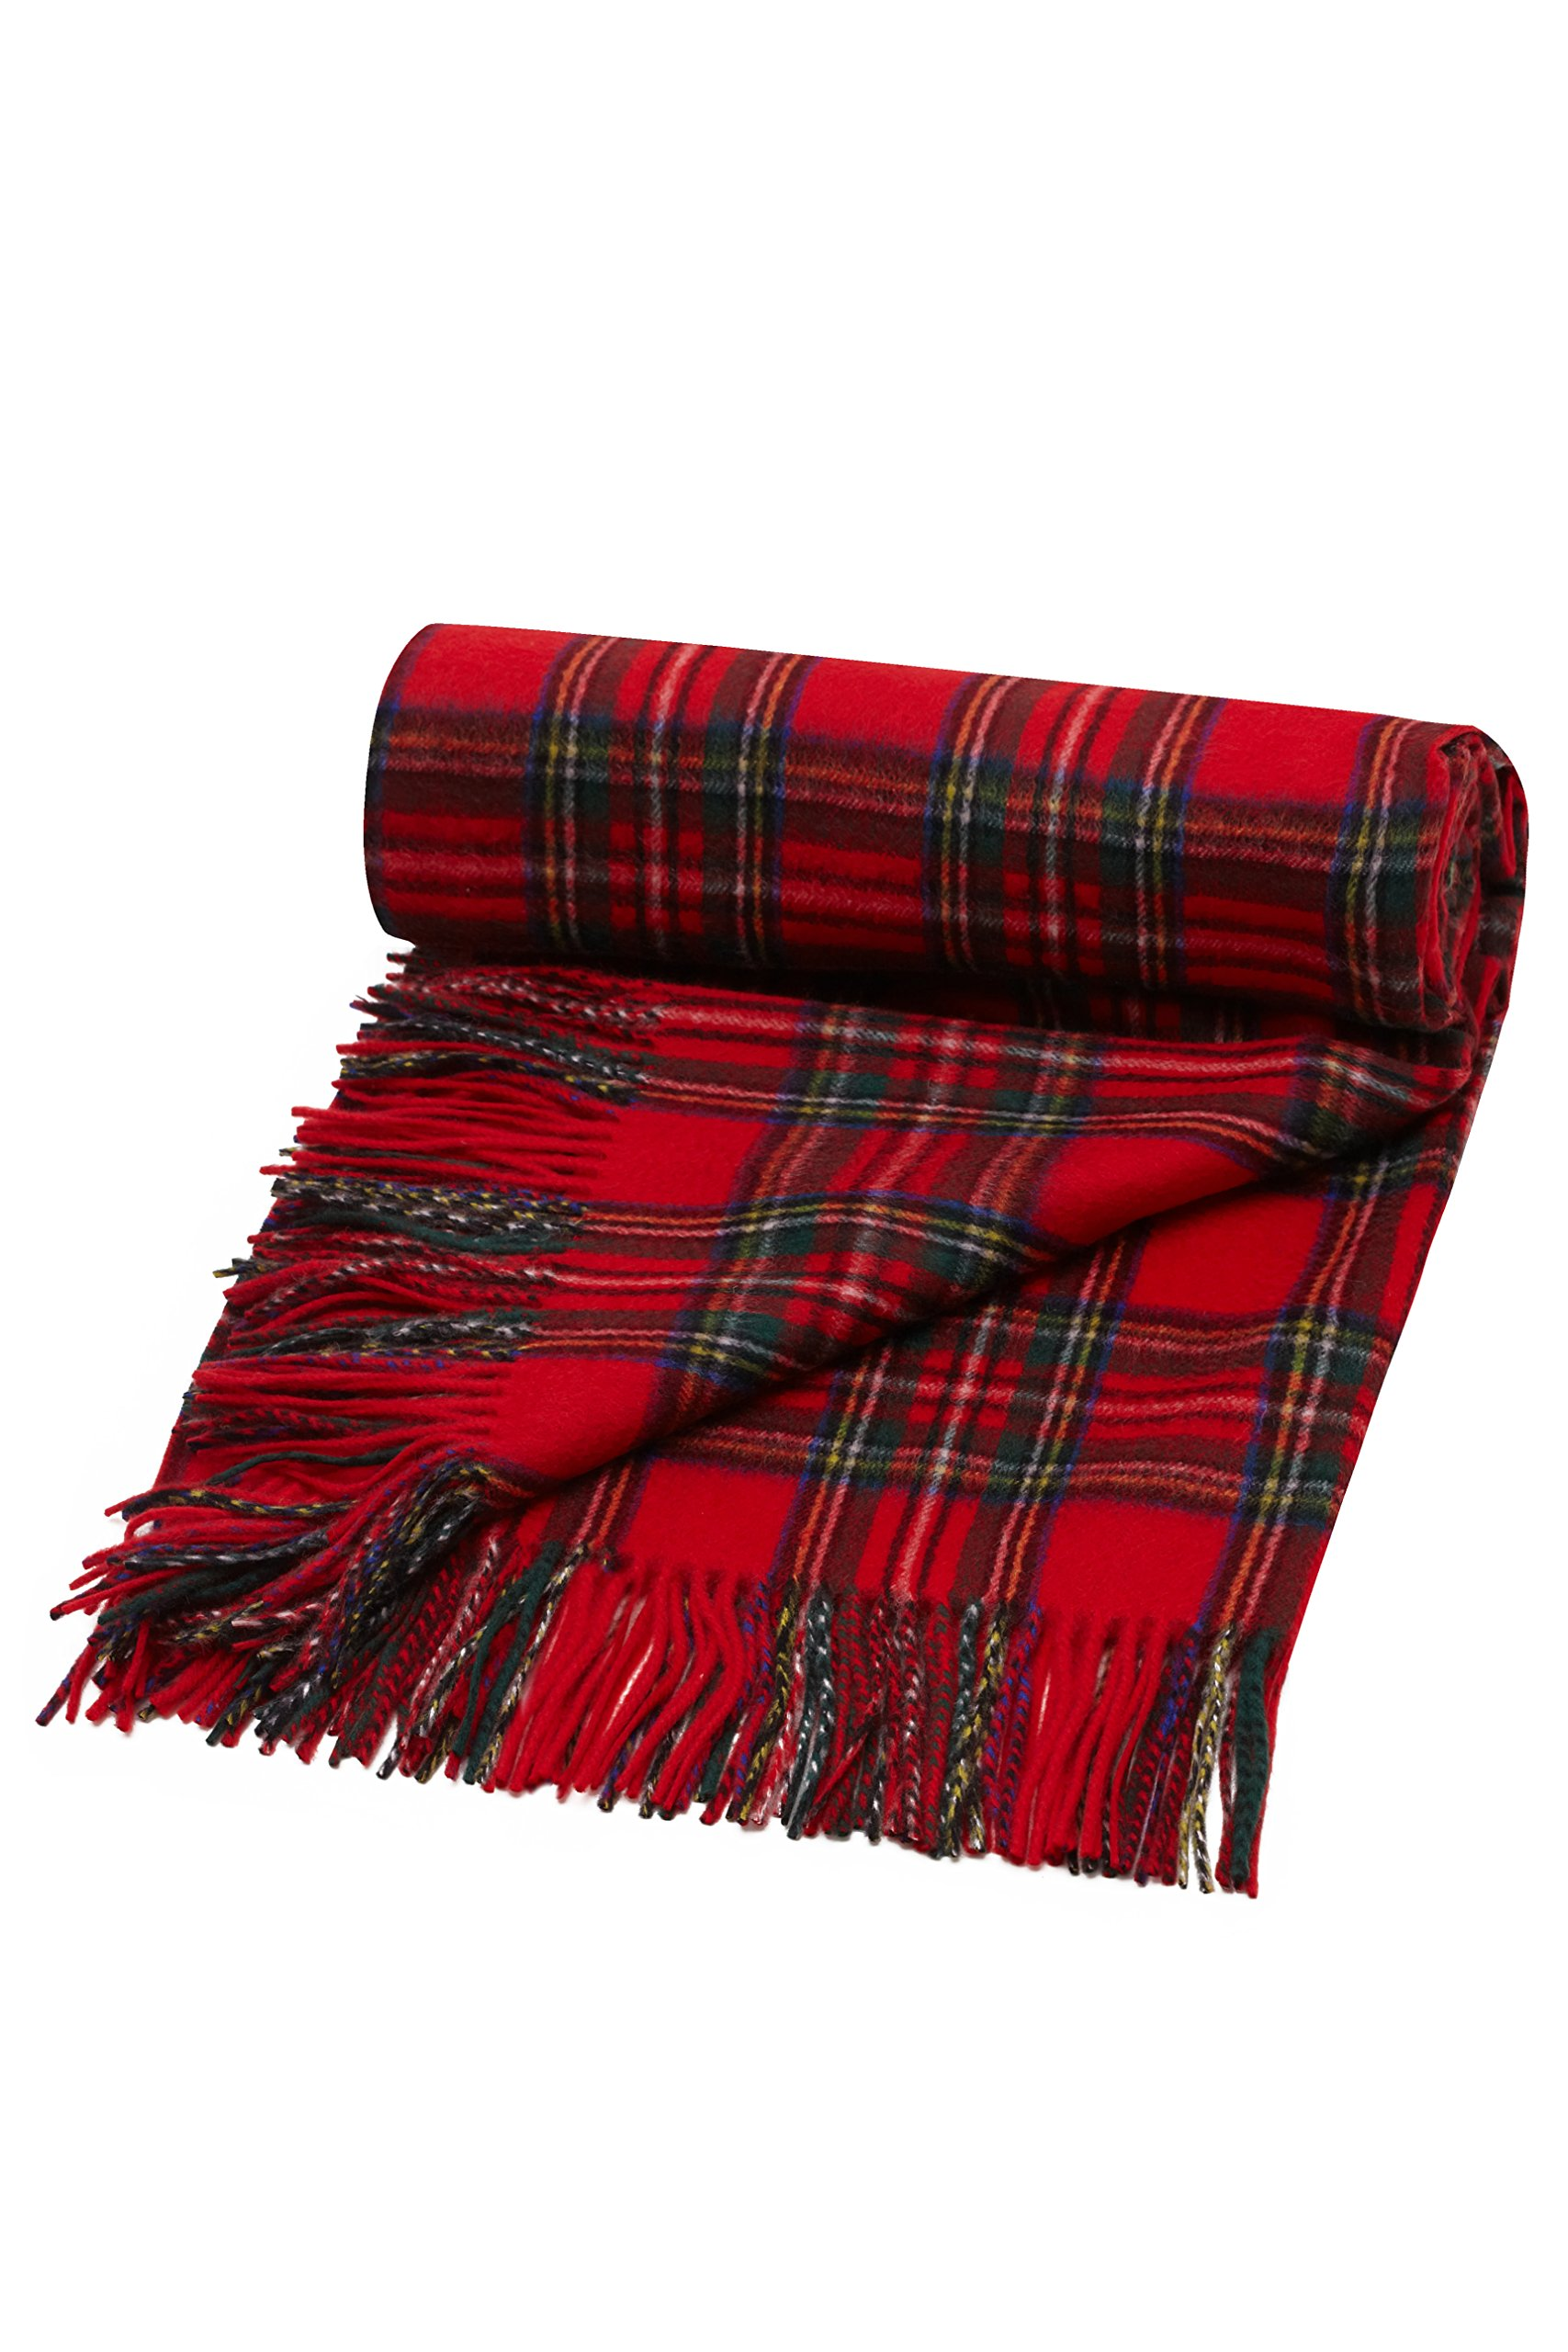 Oxfords Cashmere Pure Cashmere Tartan Blanket, Royal Stewart-One Size